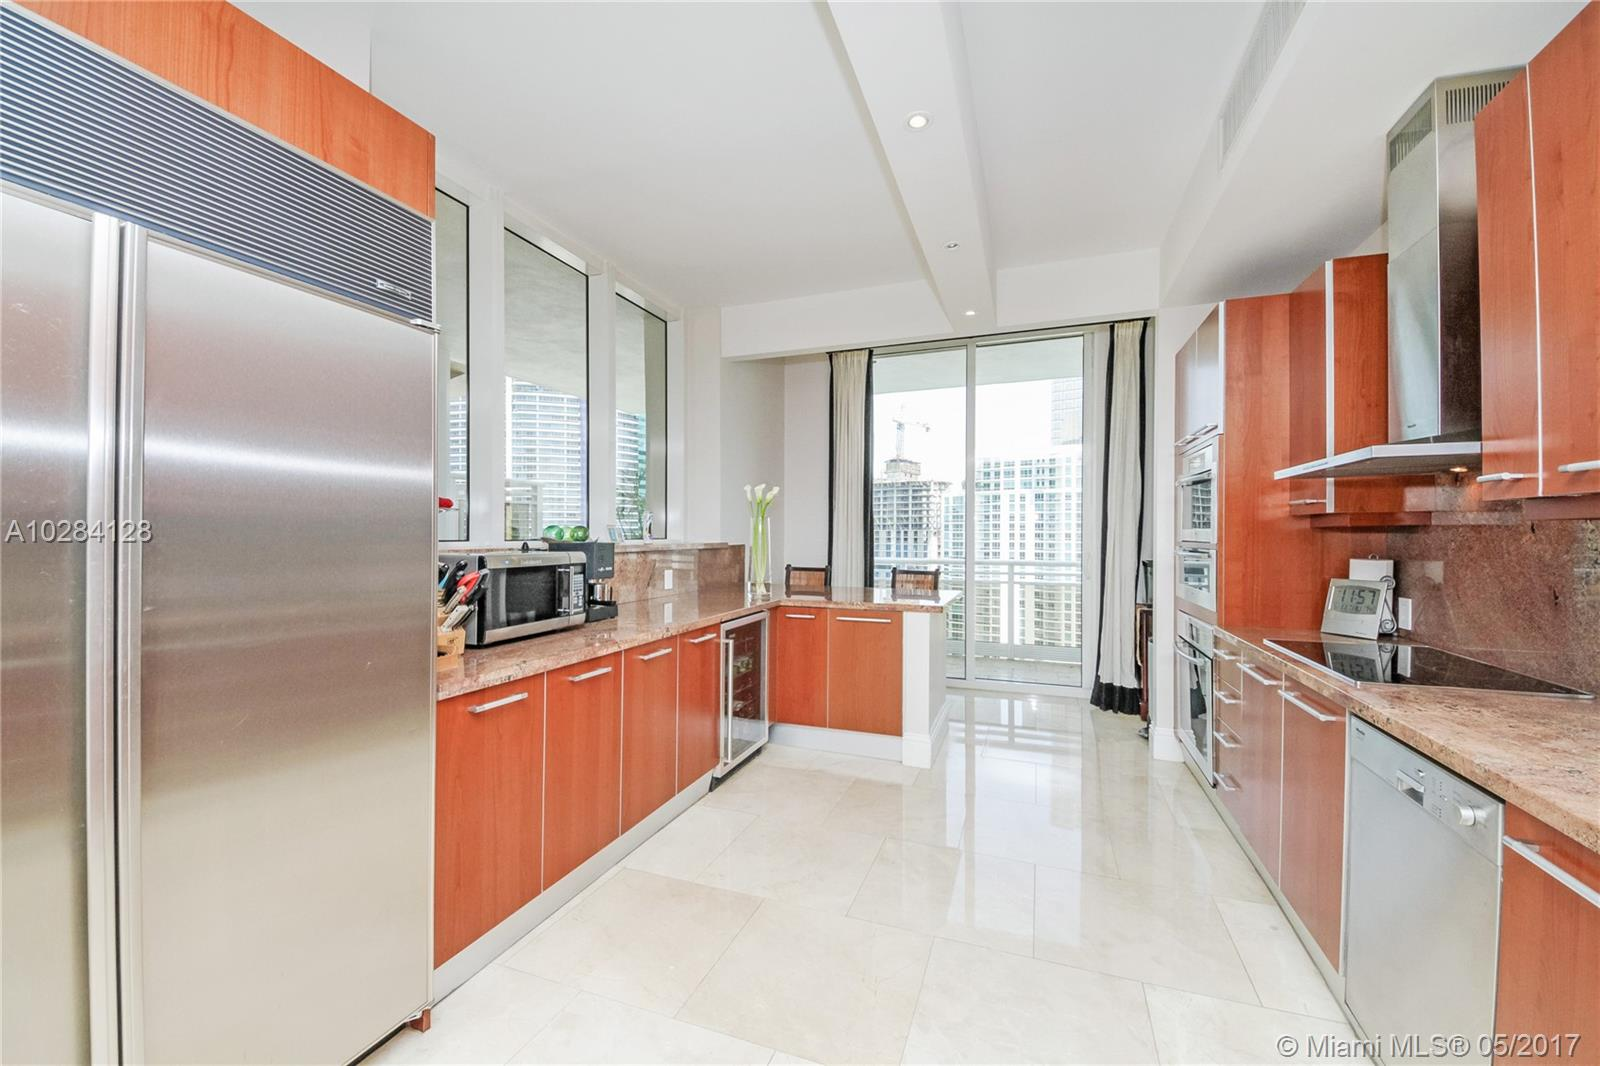 901 Brickell key blvd-PH3705 miami--fl-33131-a10284128-Pic20